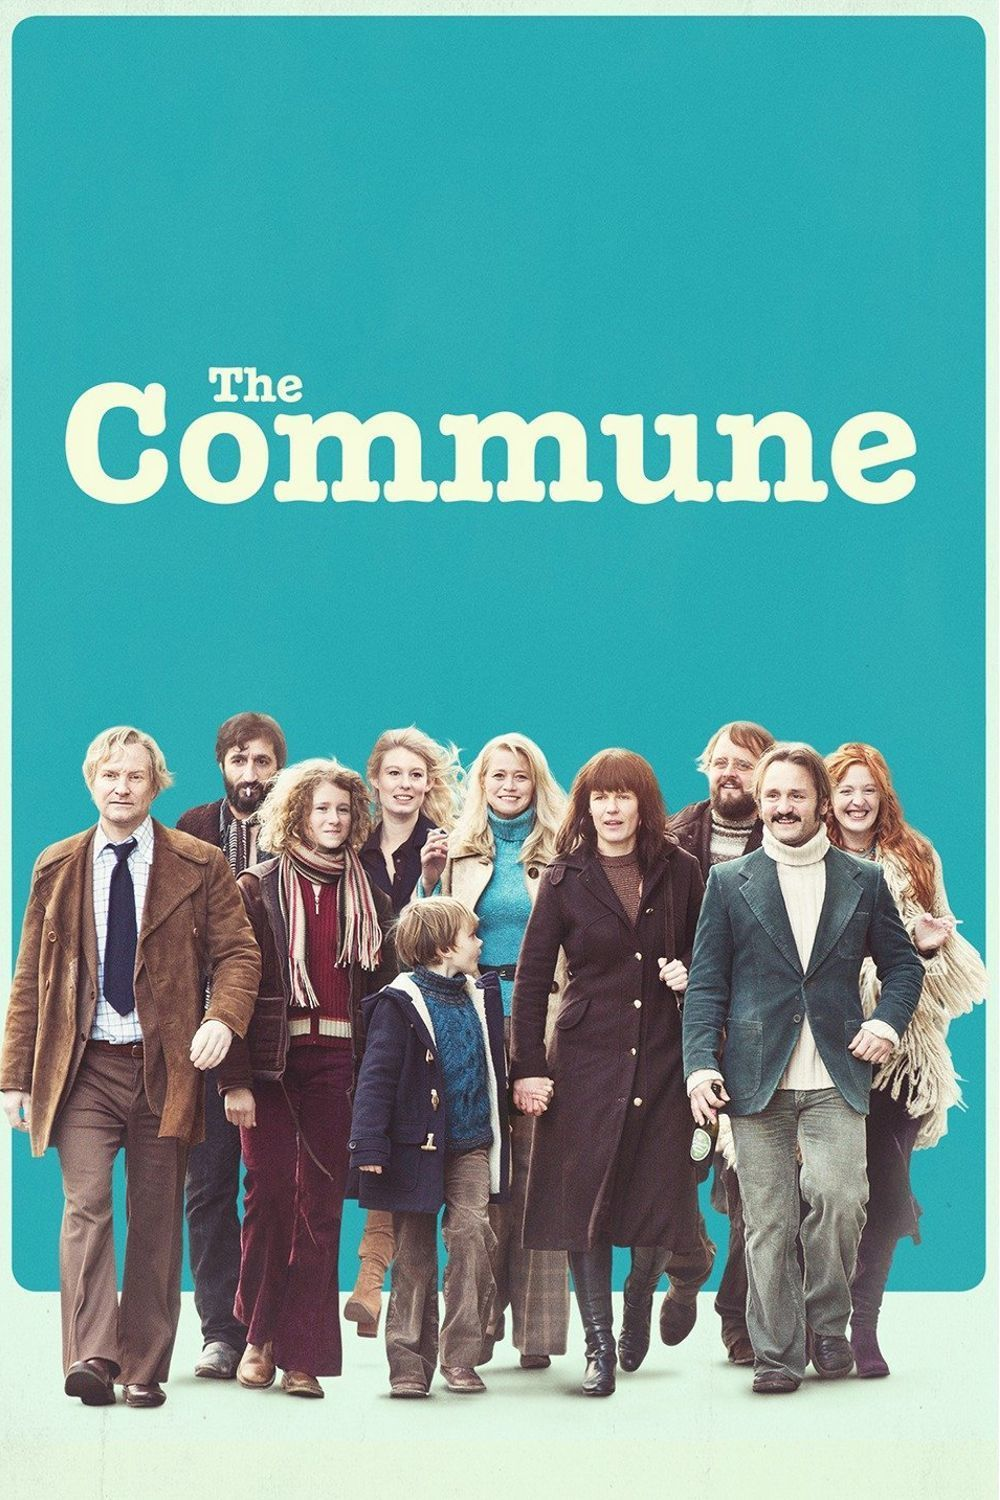 The Commune - Movie Poster